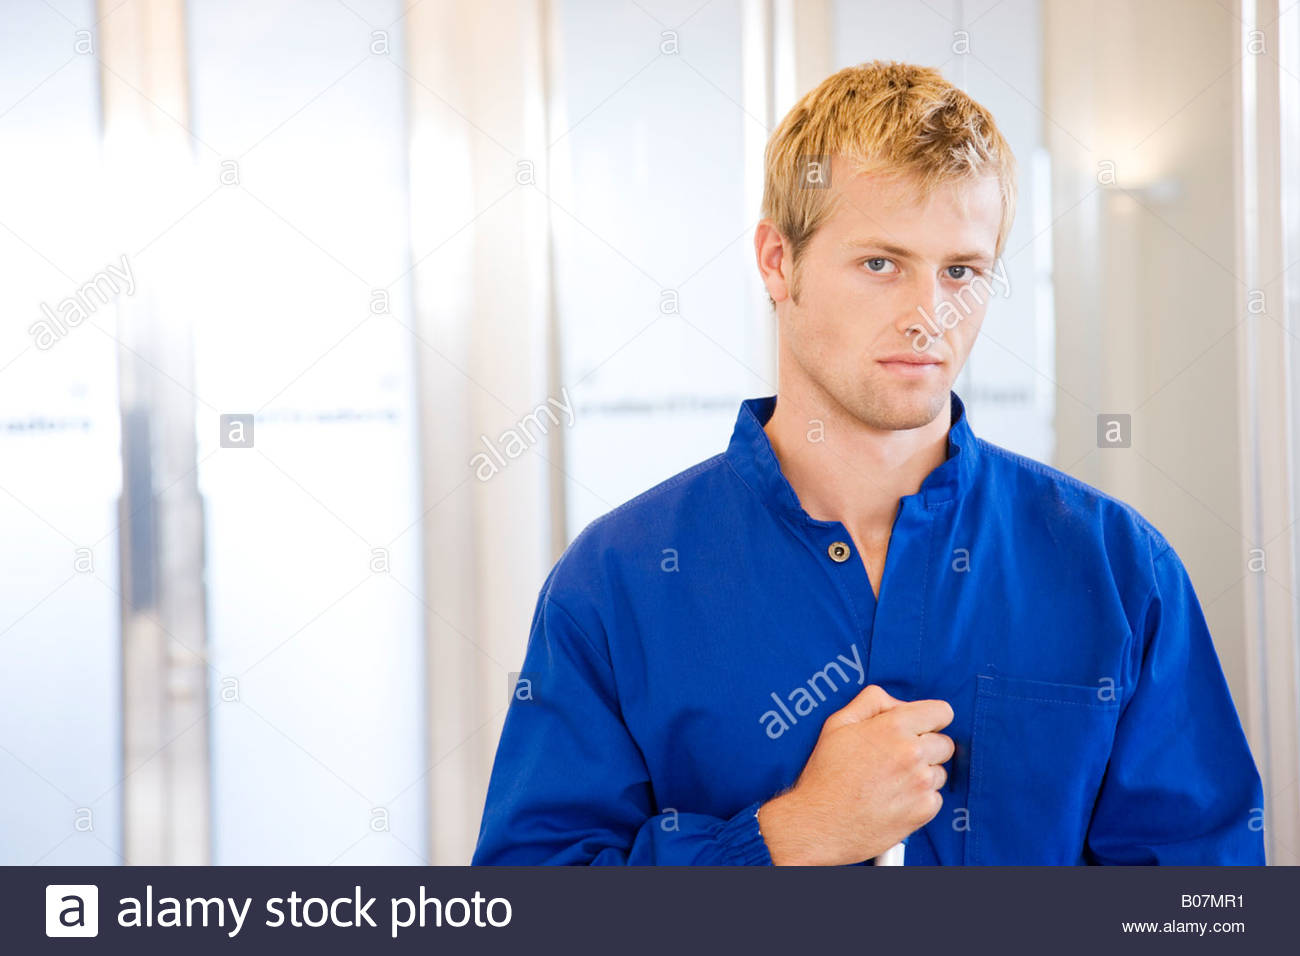 Office cleaner or janitor, half length portrait - Stock Image